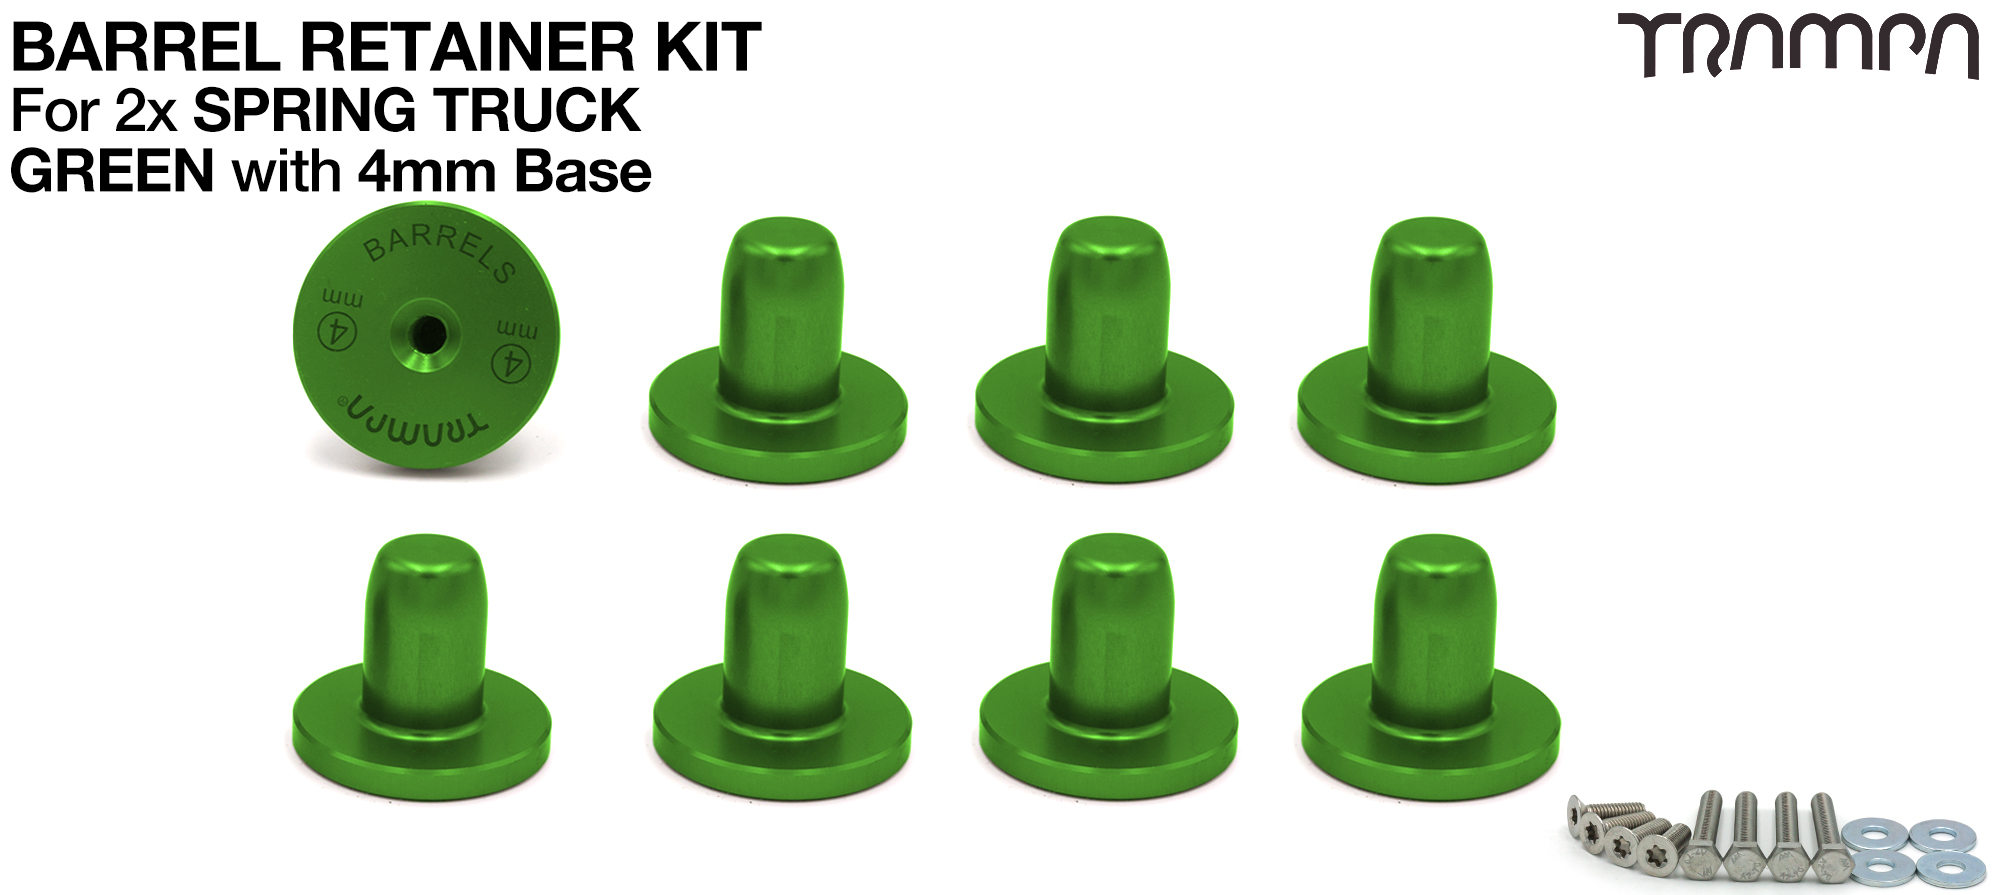 GREEN Barrel Retainers x8 with 4mm Base